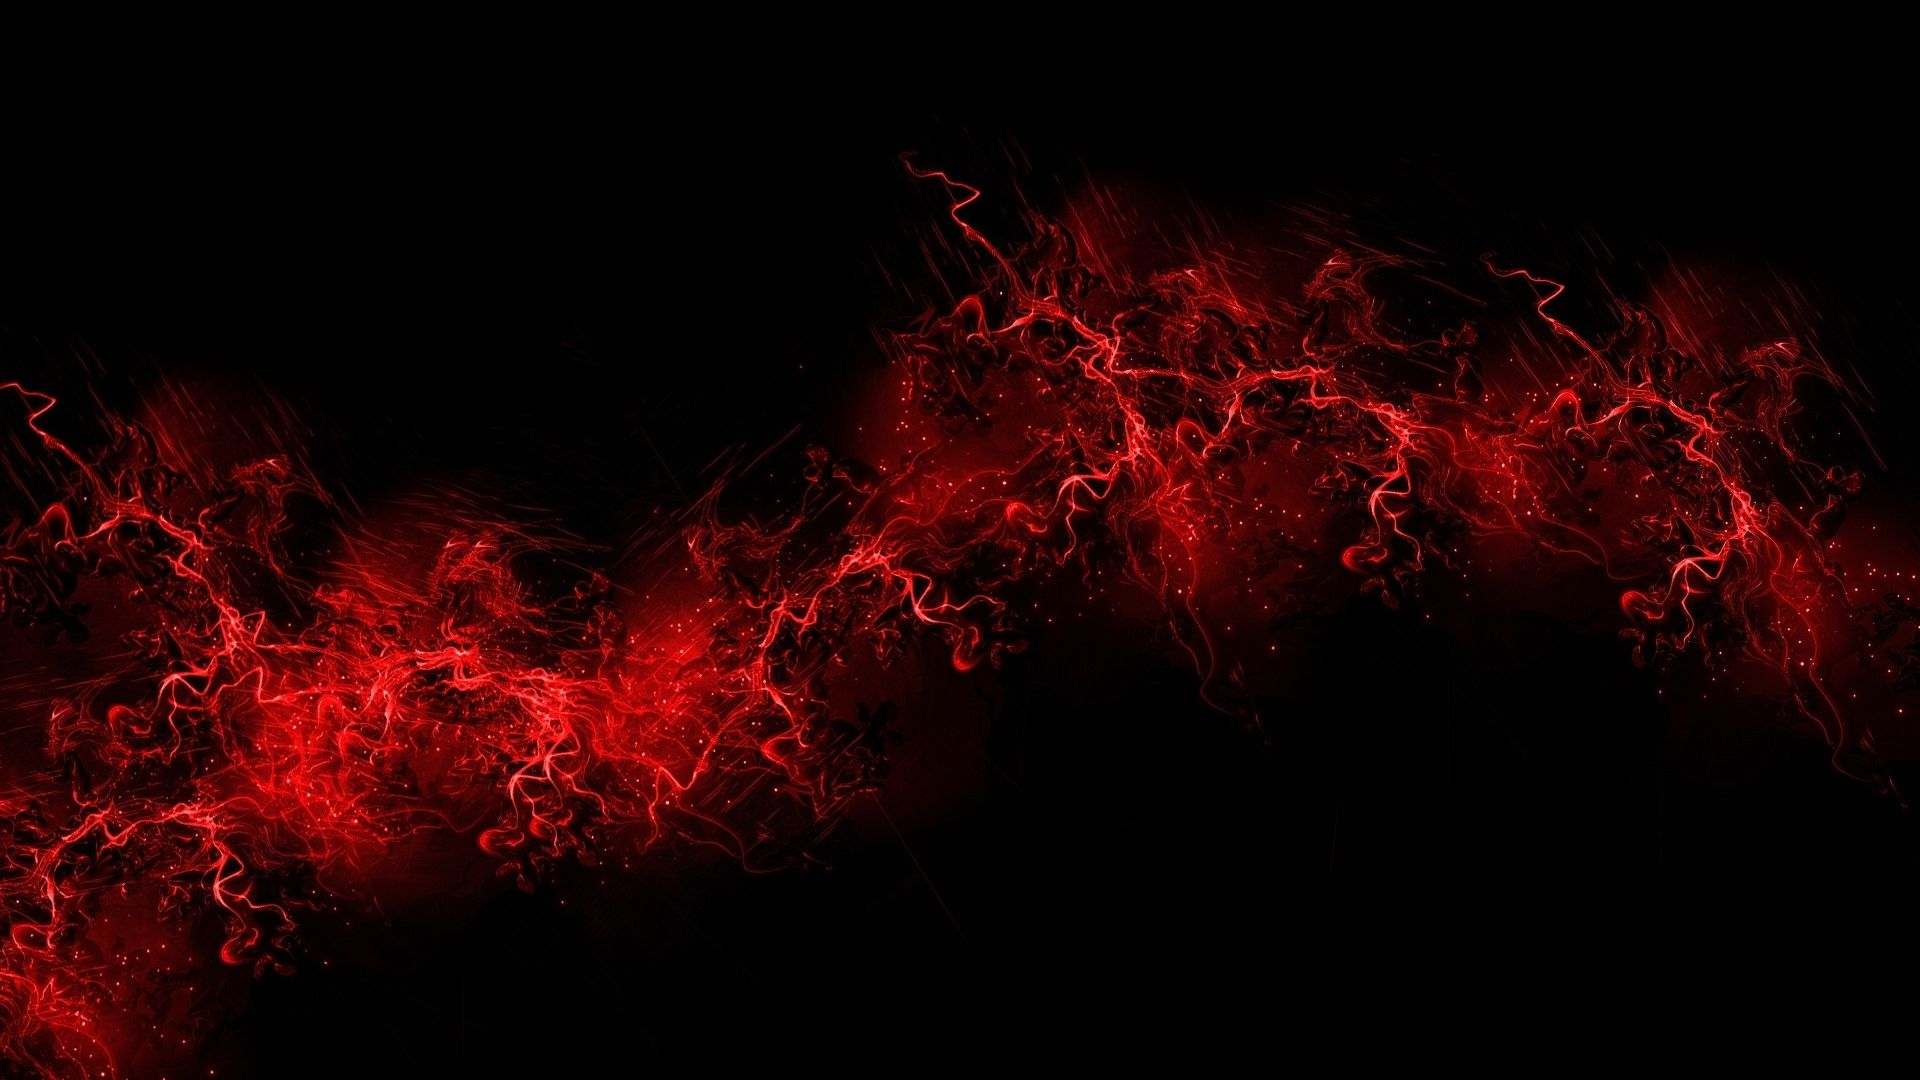 HD Background Images Red And Black